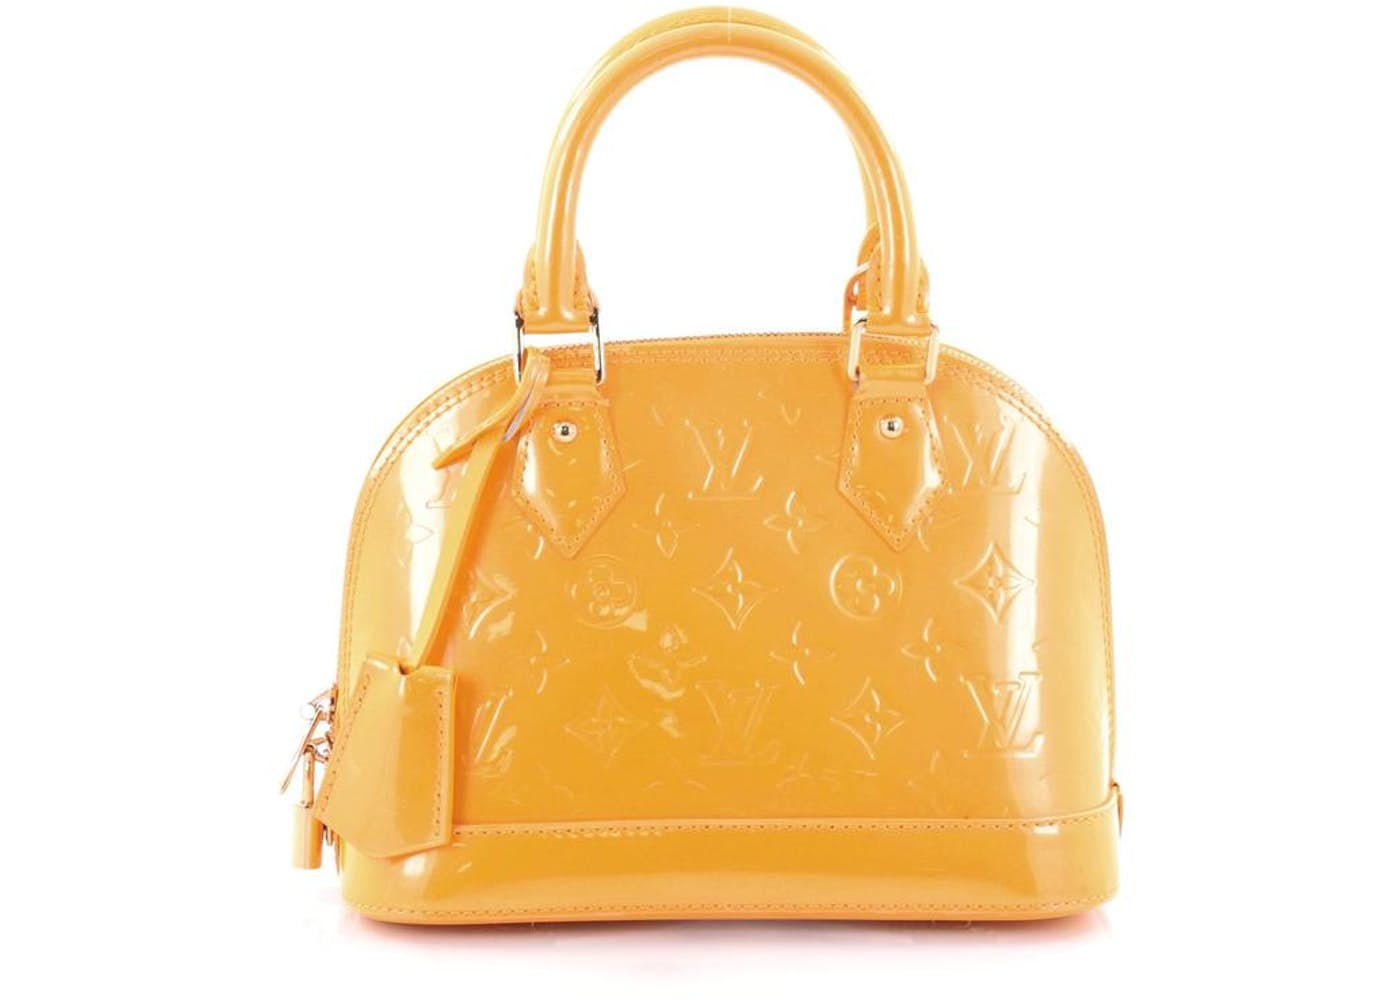 8b0a2319bc34 Small bags are a big deal these days and this BB version of the Louis  Vuitton Alma doesn t disappoint. This micro version of one of LV s most  popular bag is ...